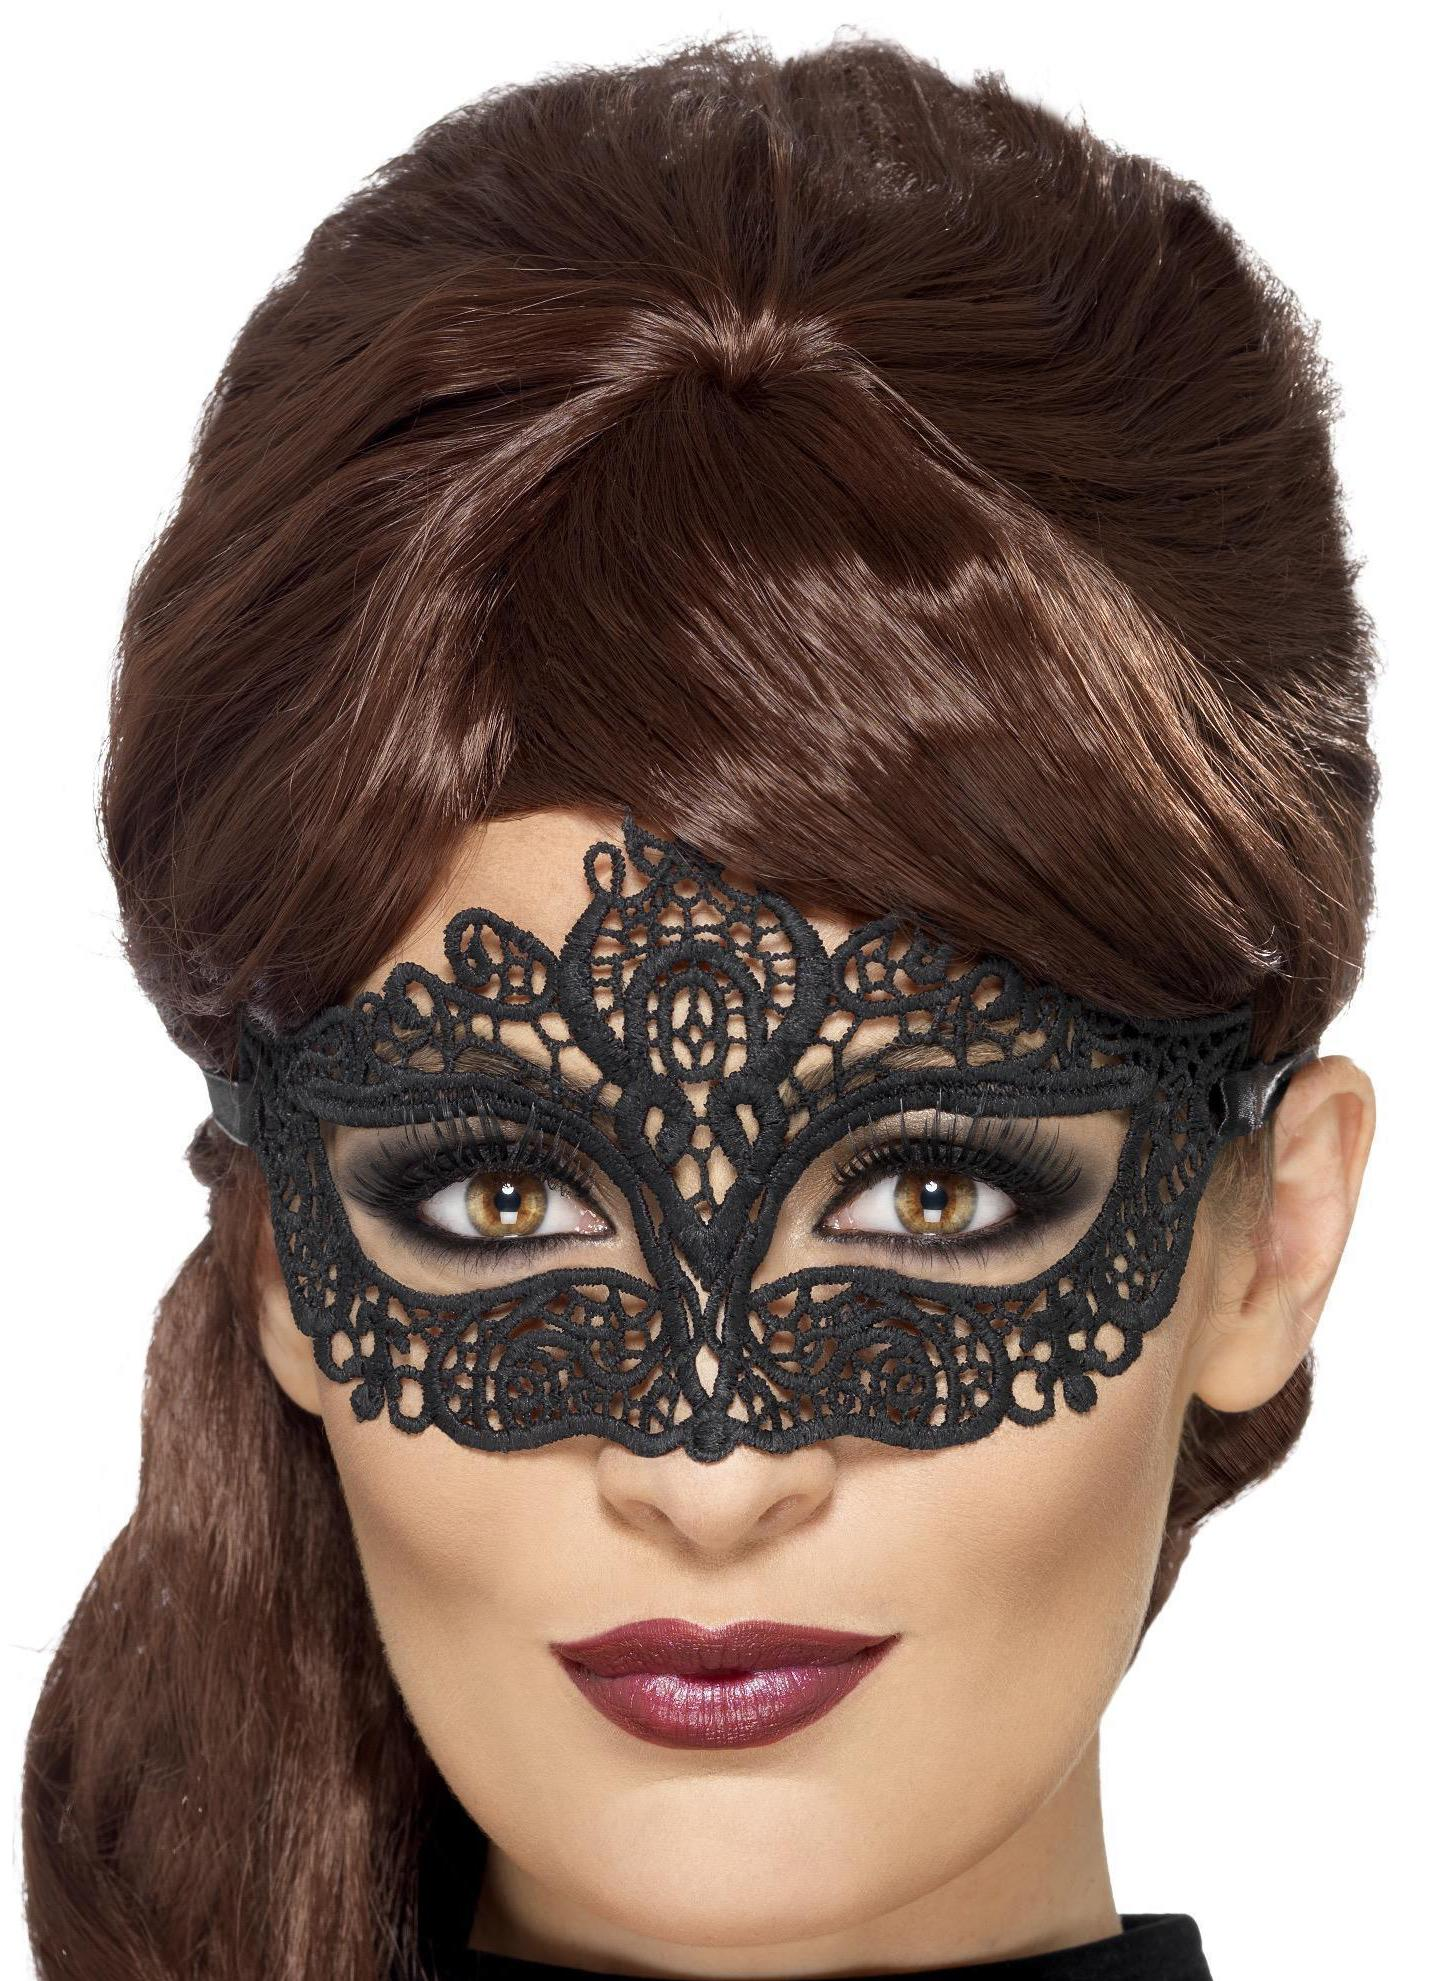 Embroidered Lace Filigree Eye mask Black